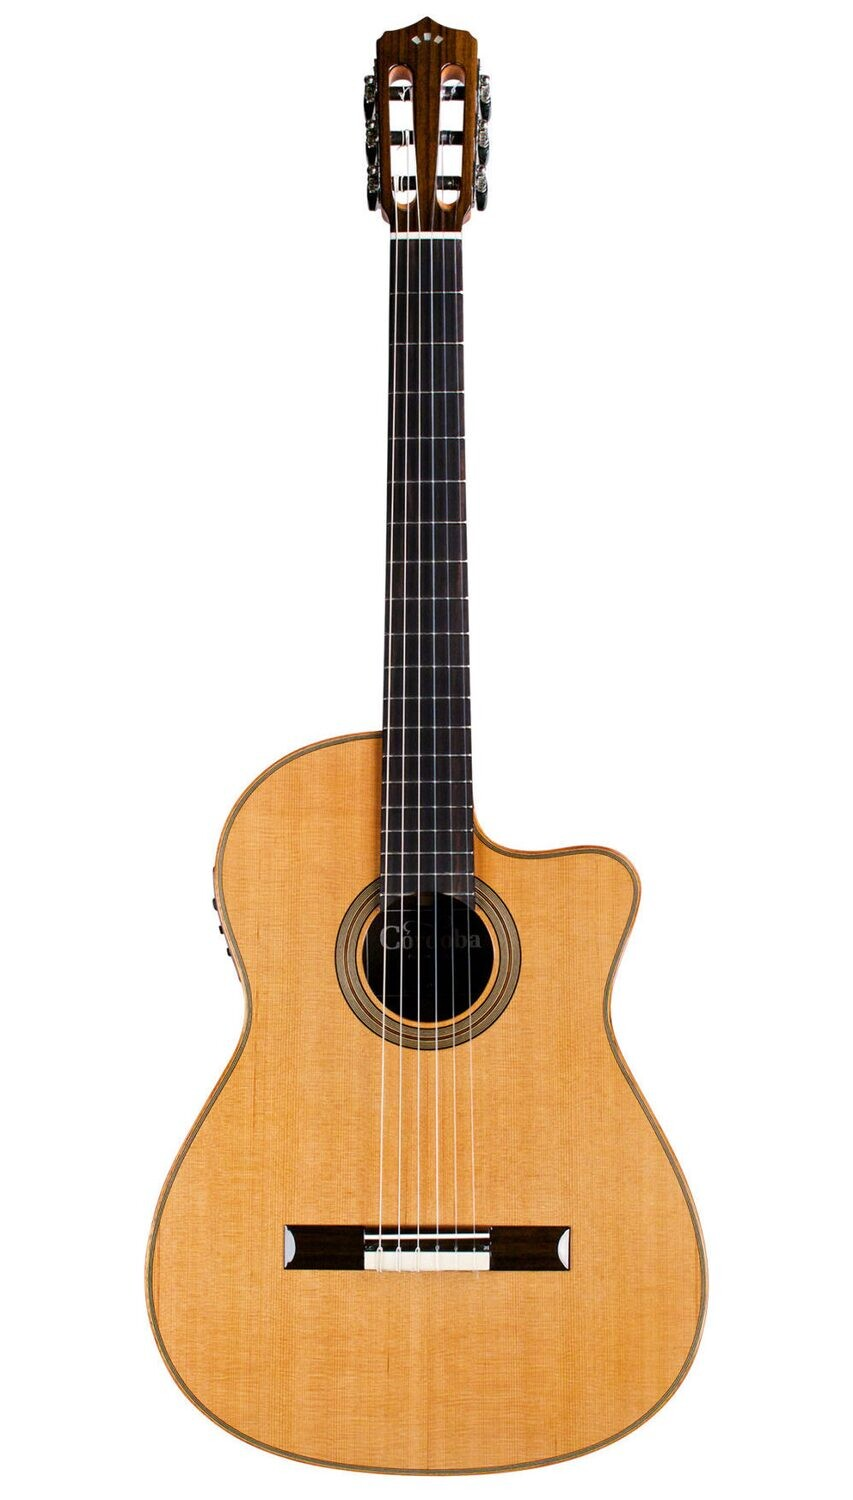 Cordoba Fusion Orchestra CE - Solid Cedar Top - Acoustic Electric Nylon String Classical Guitar